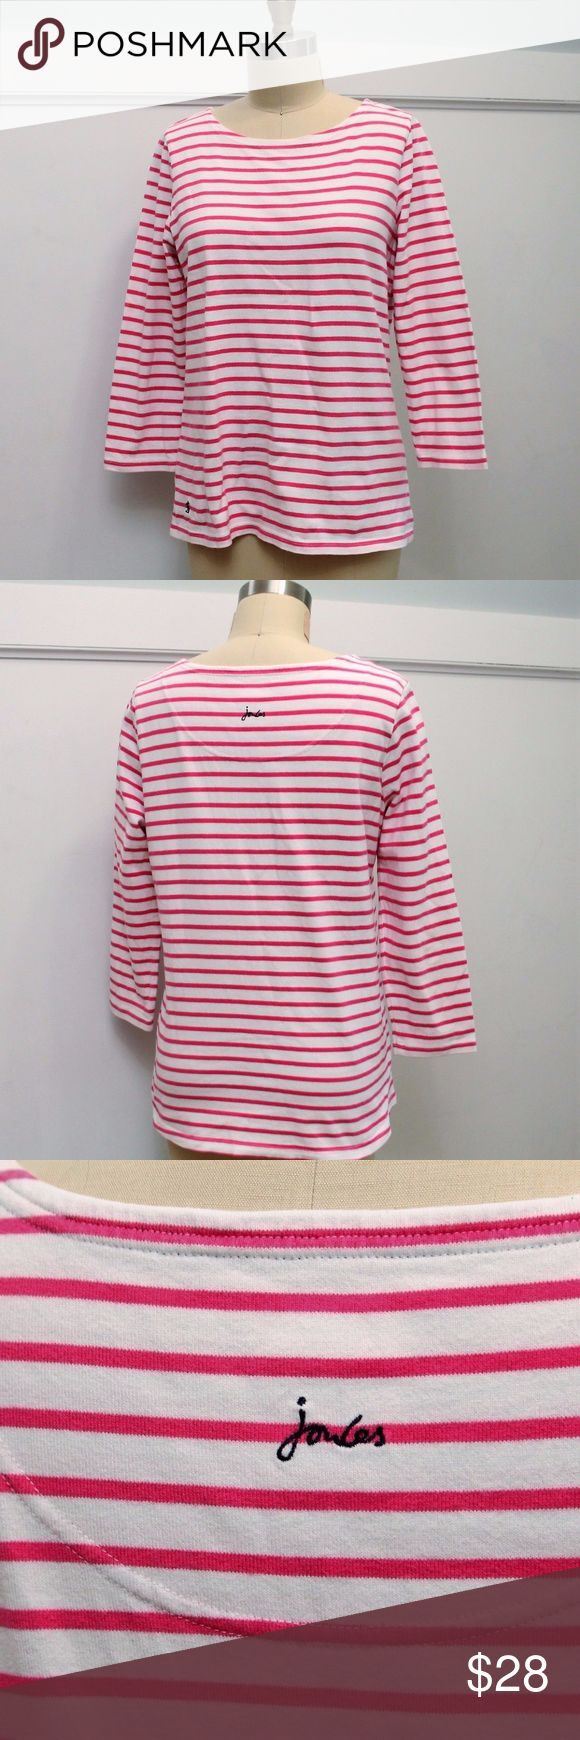 "Joules Harbour Stripe Top Joules  Harbour Stripe Top  Sz 10  Pink & White Cotton  3/4"" Sleeves Excellent condition Length: 25.5"" Bust: 38"" around Joules Tops"